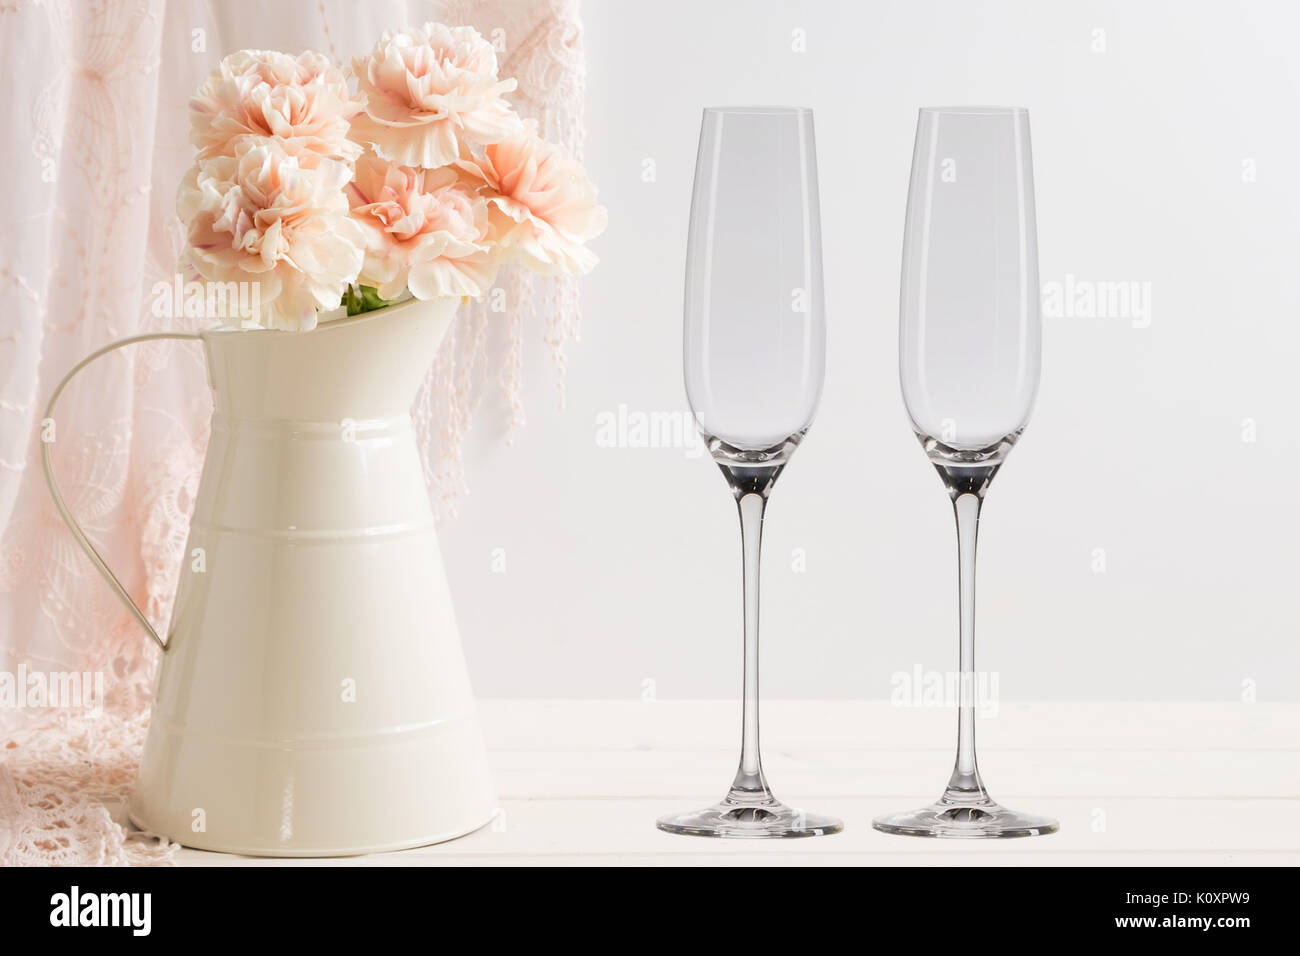 Floral mock-up of 2 champagne glasses next to a vase of flowers, perfect for businesses who sell decals, vinyl stickers, just overlay your design - Stock Image